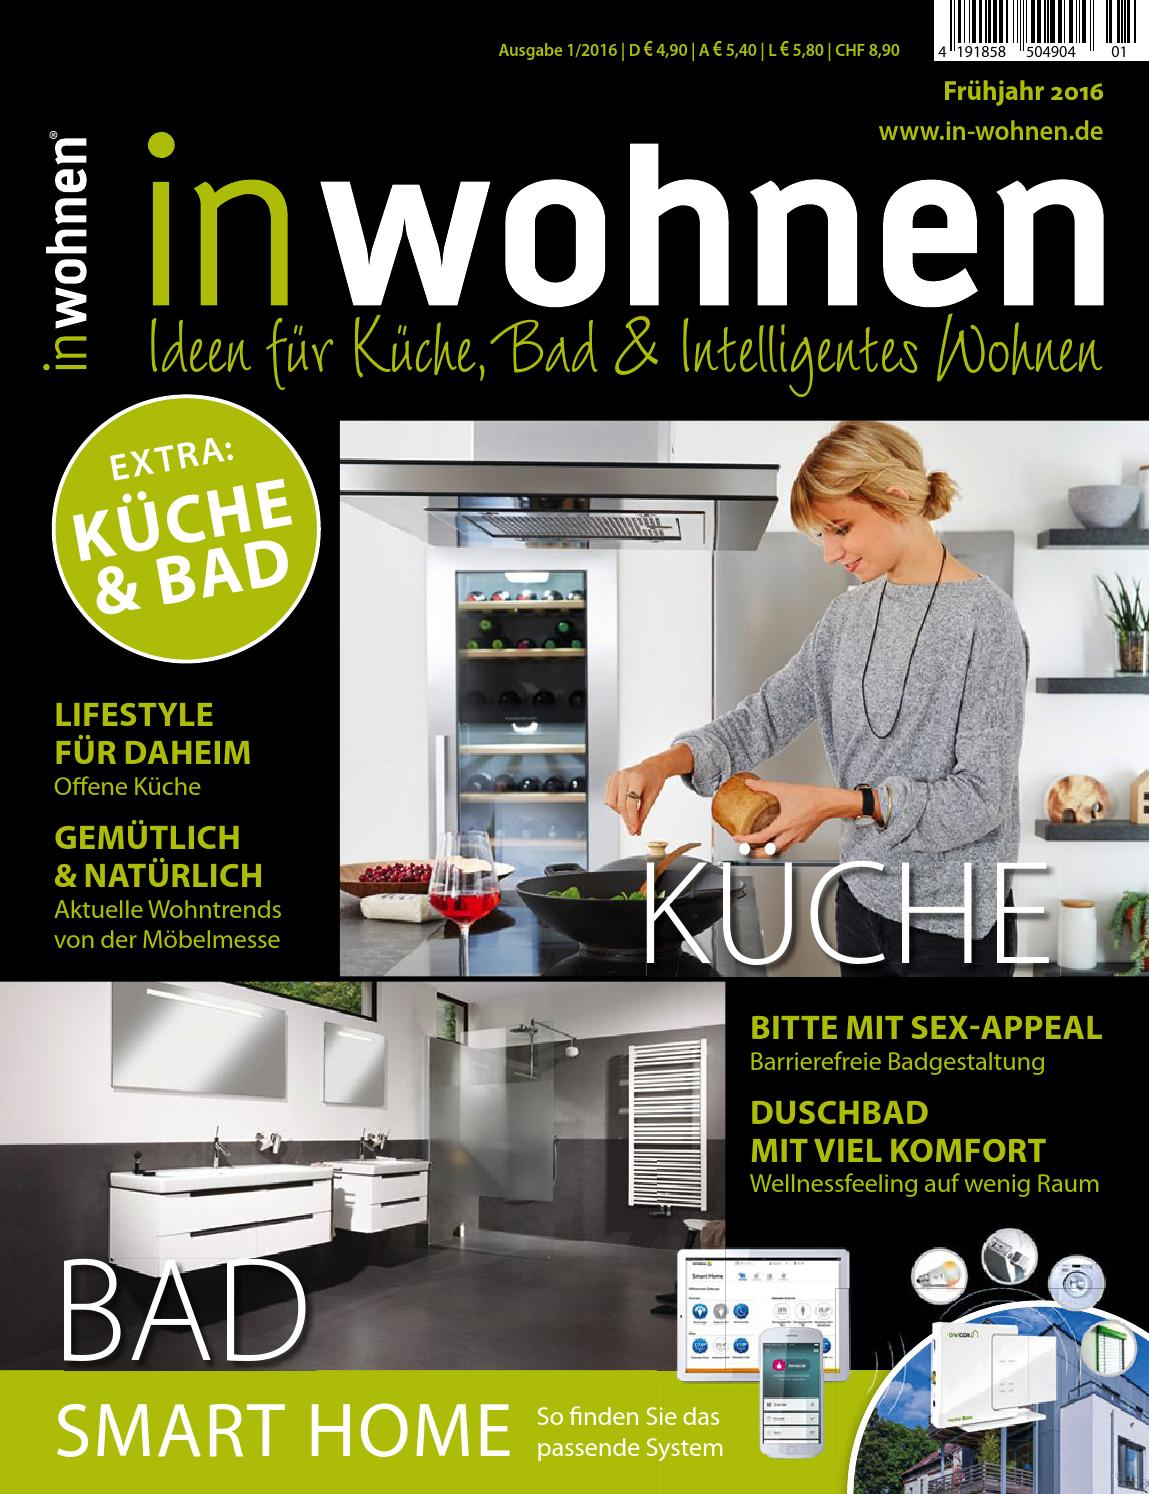 In wohnen 01 2016 by Irene.Super - issuu